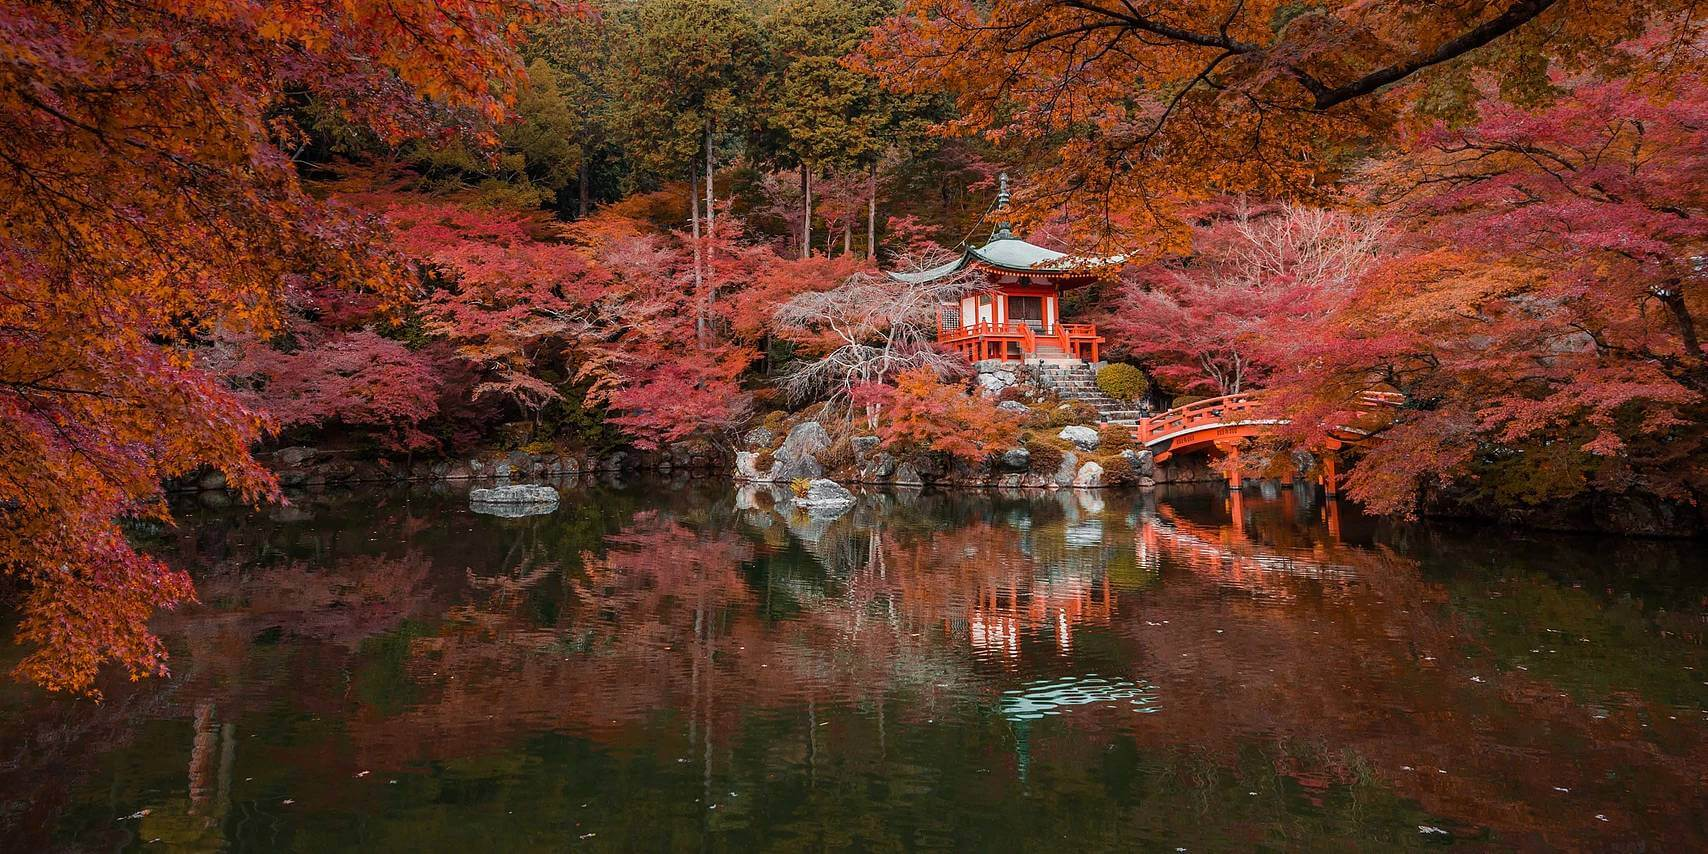 kyoto in fall photos 9 (1)